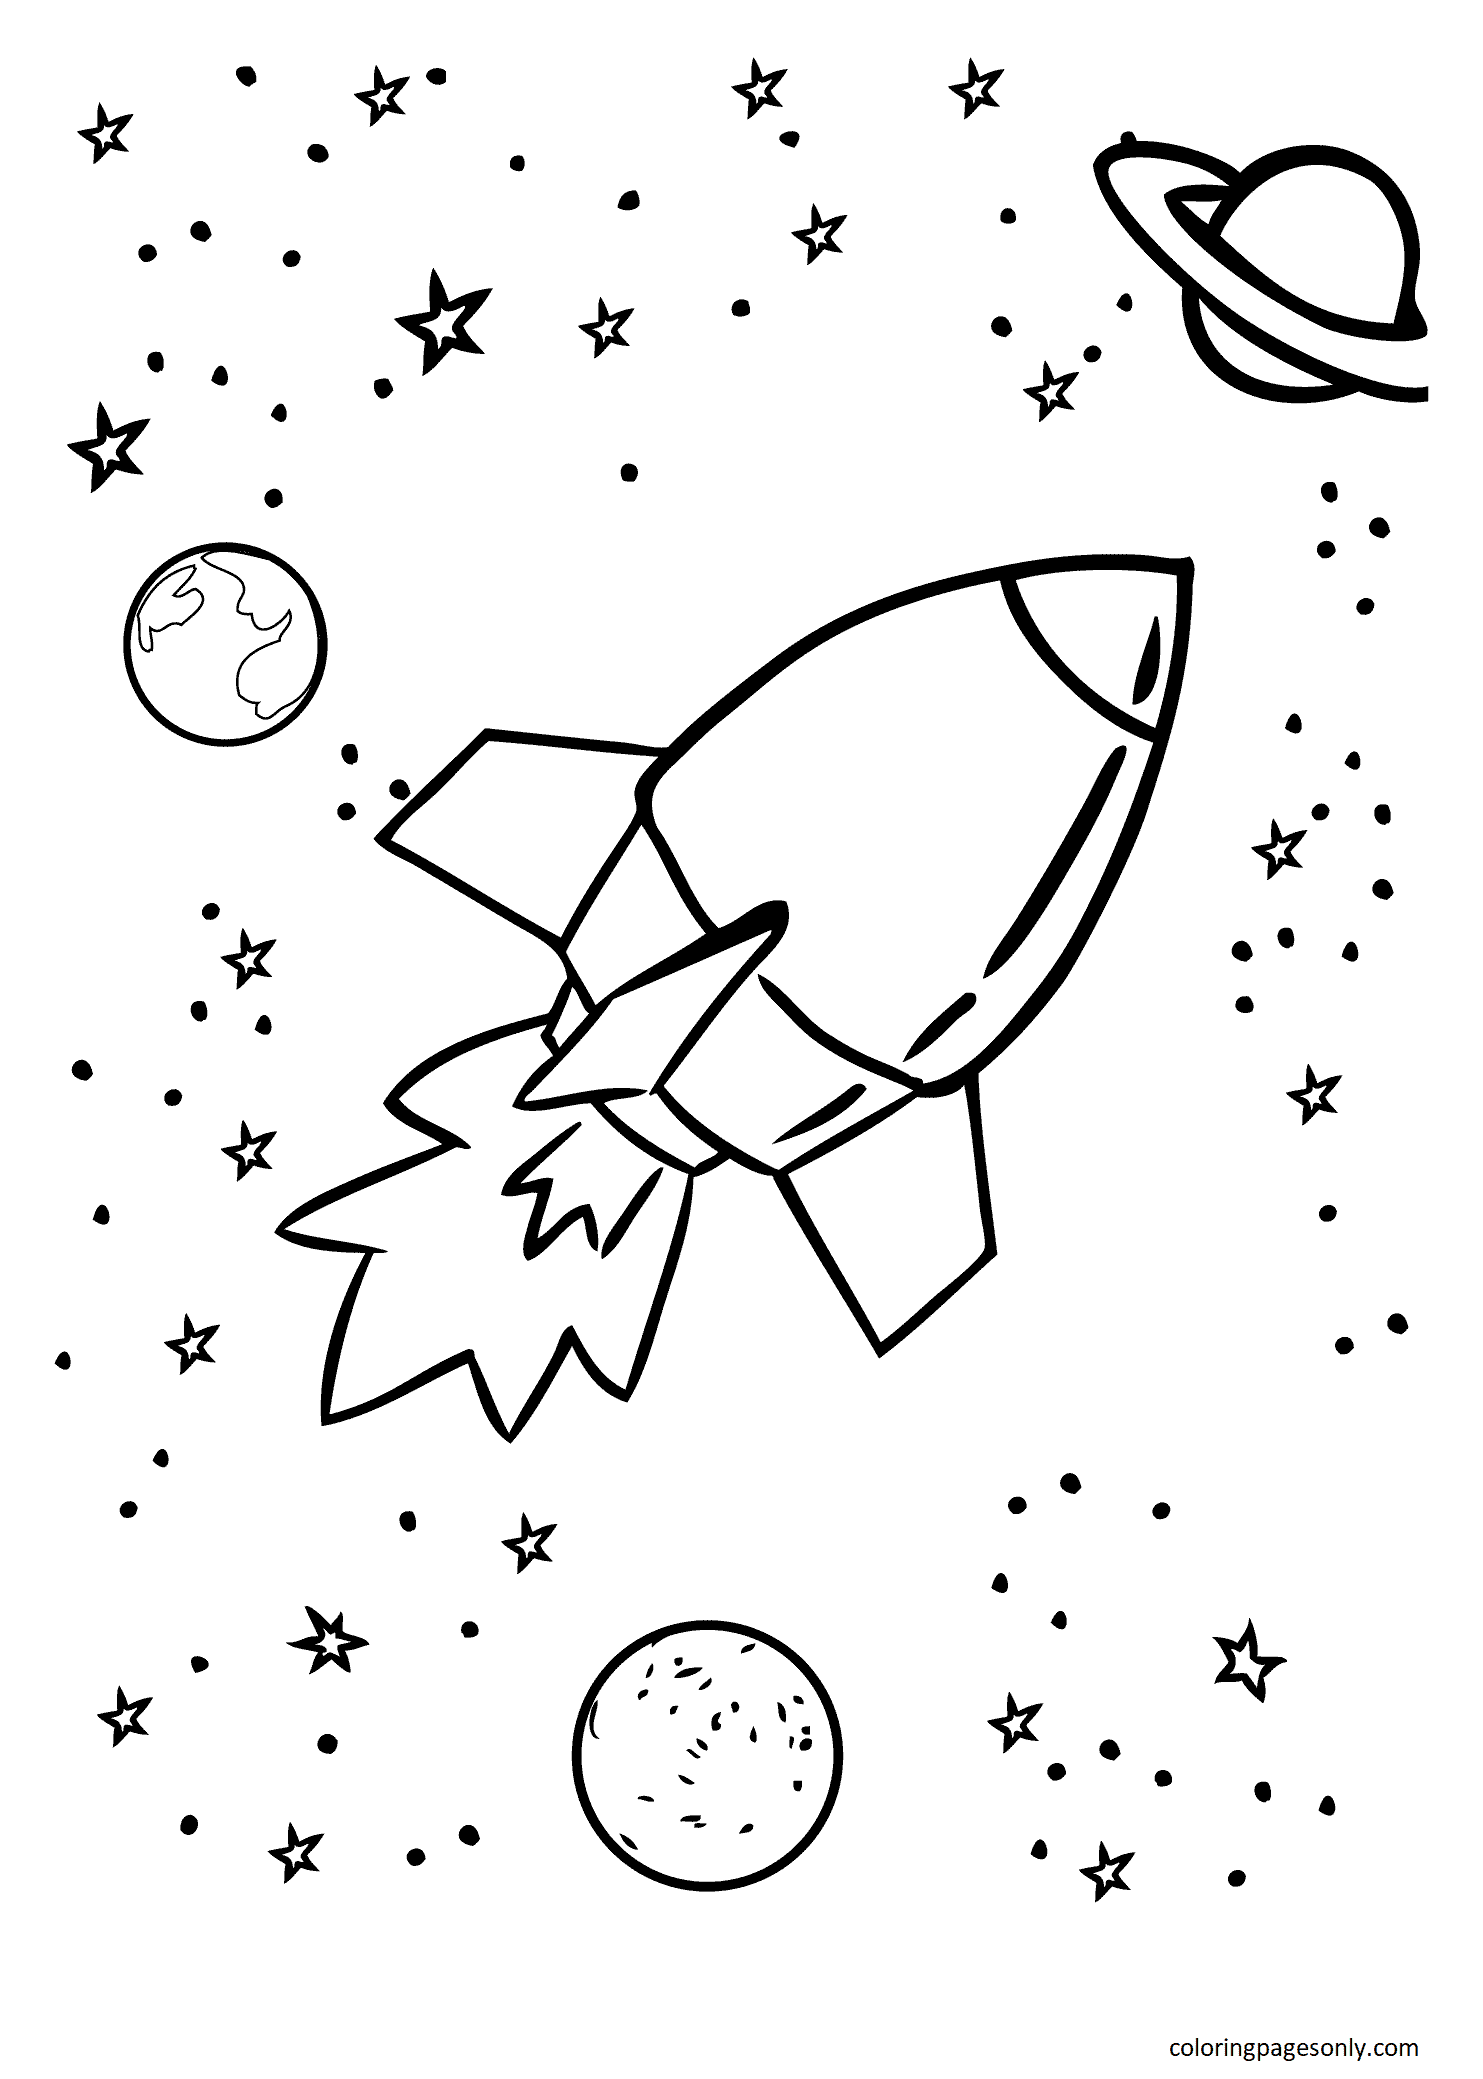 Rocket With Planets Coloring Page